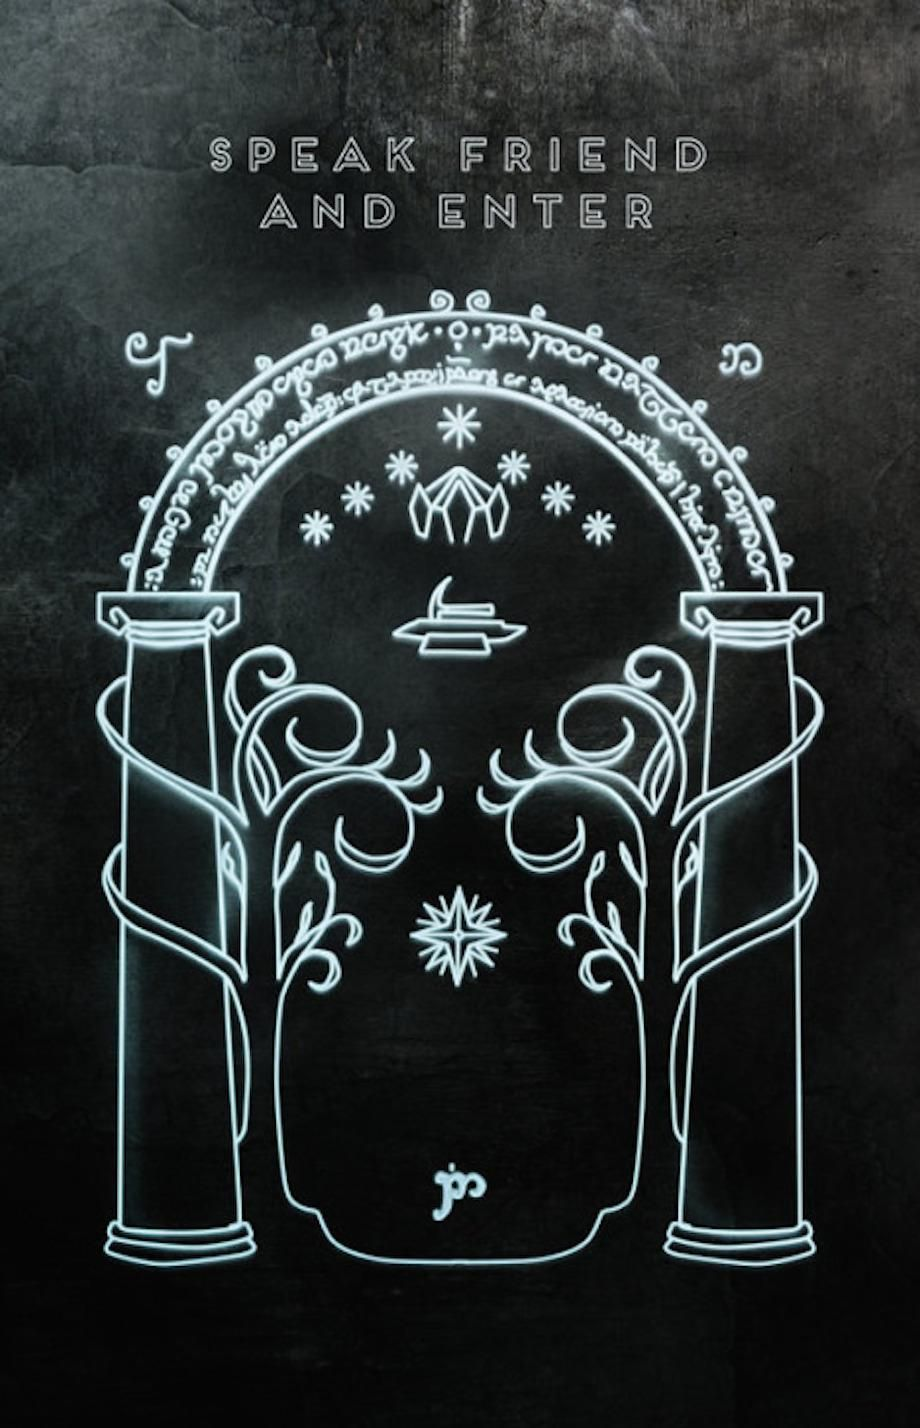 The Doors of Durin u2014 Lord of Moria. Speak friend and enter.  & Guy builds an amazing hidden u0027Lord of the Ringsu0027 themed door in his ...